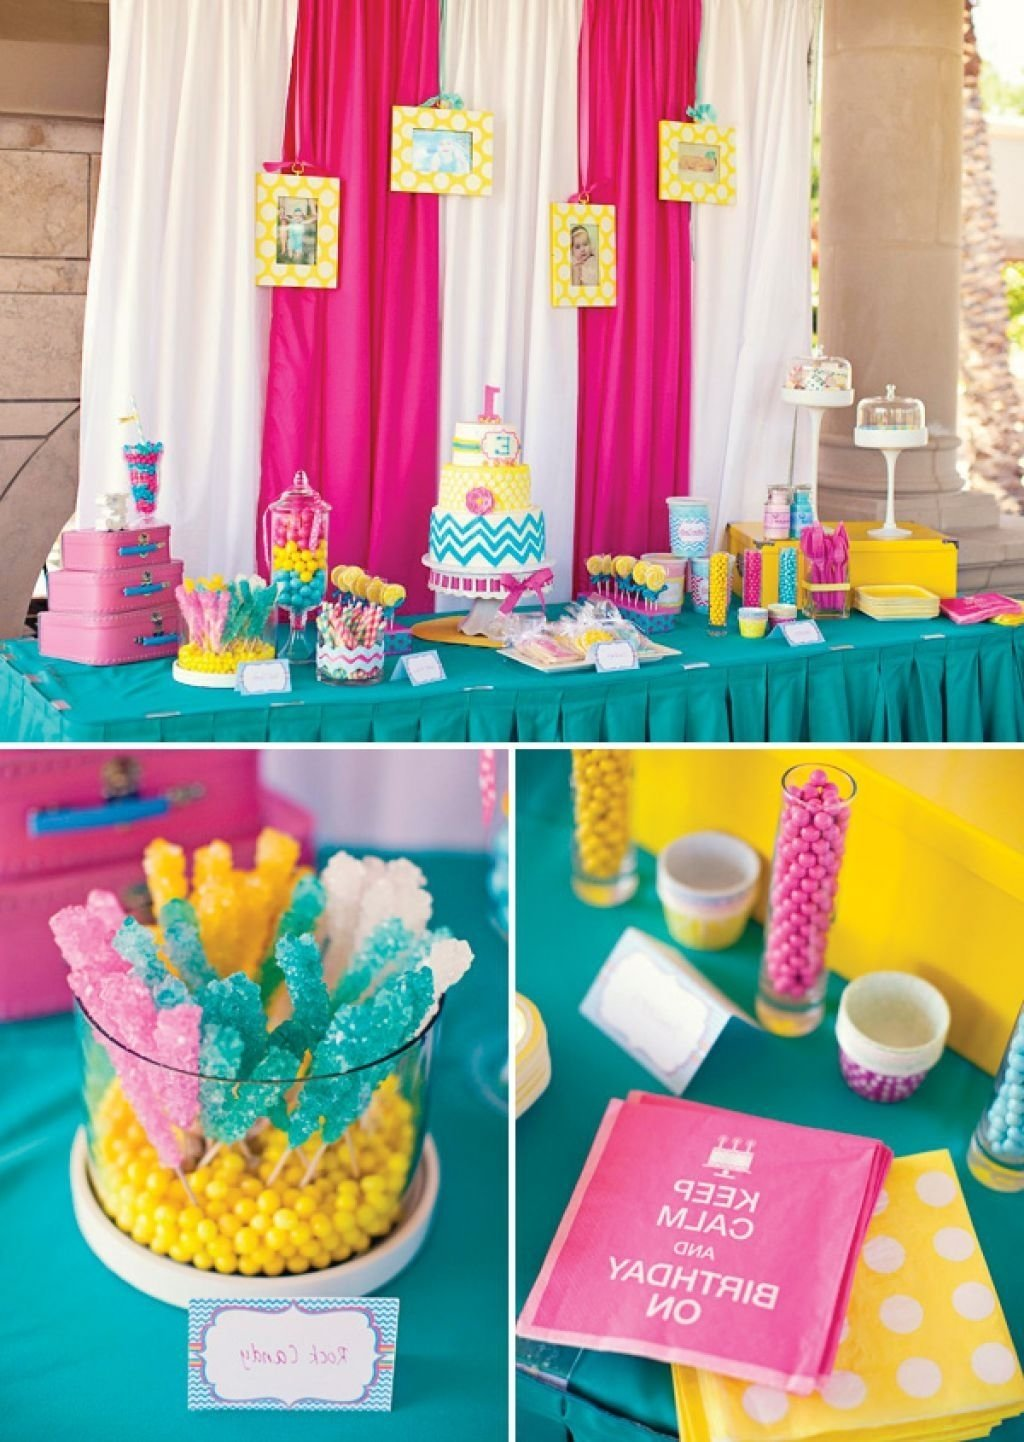 outdoor party decorations - google search | madeline | pinterest